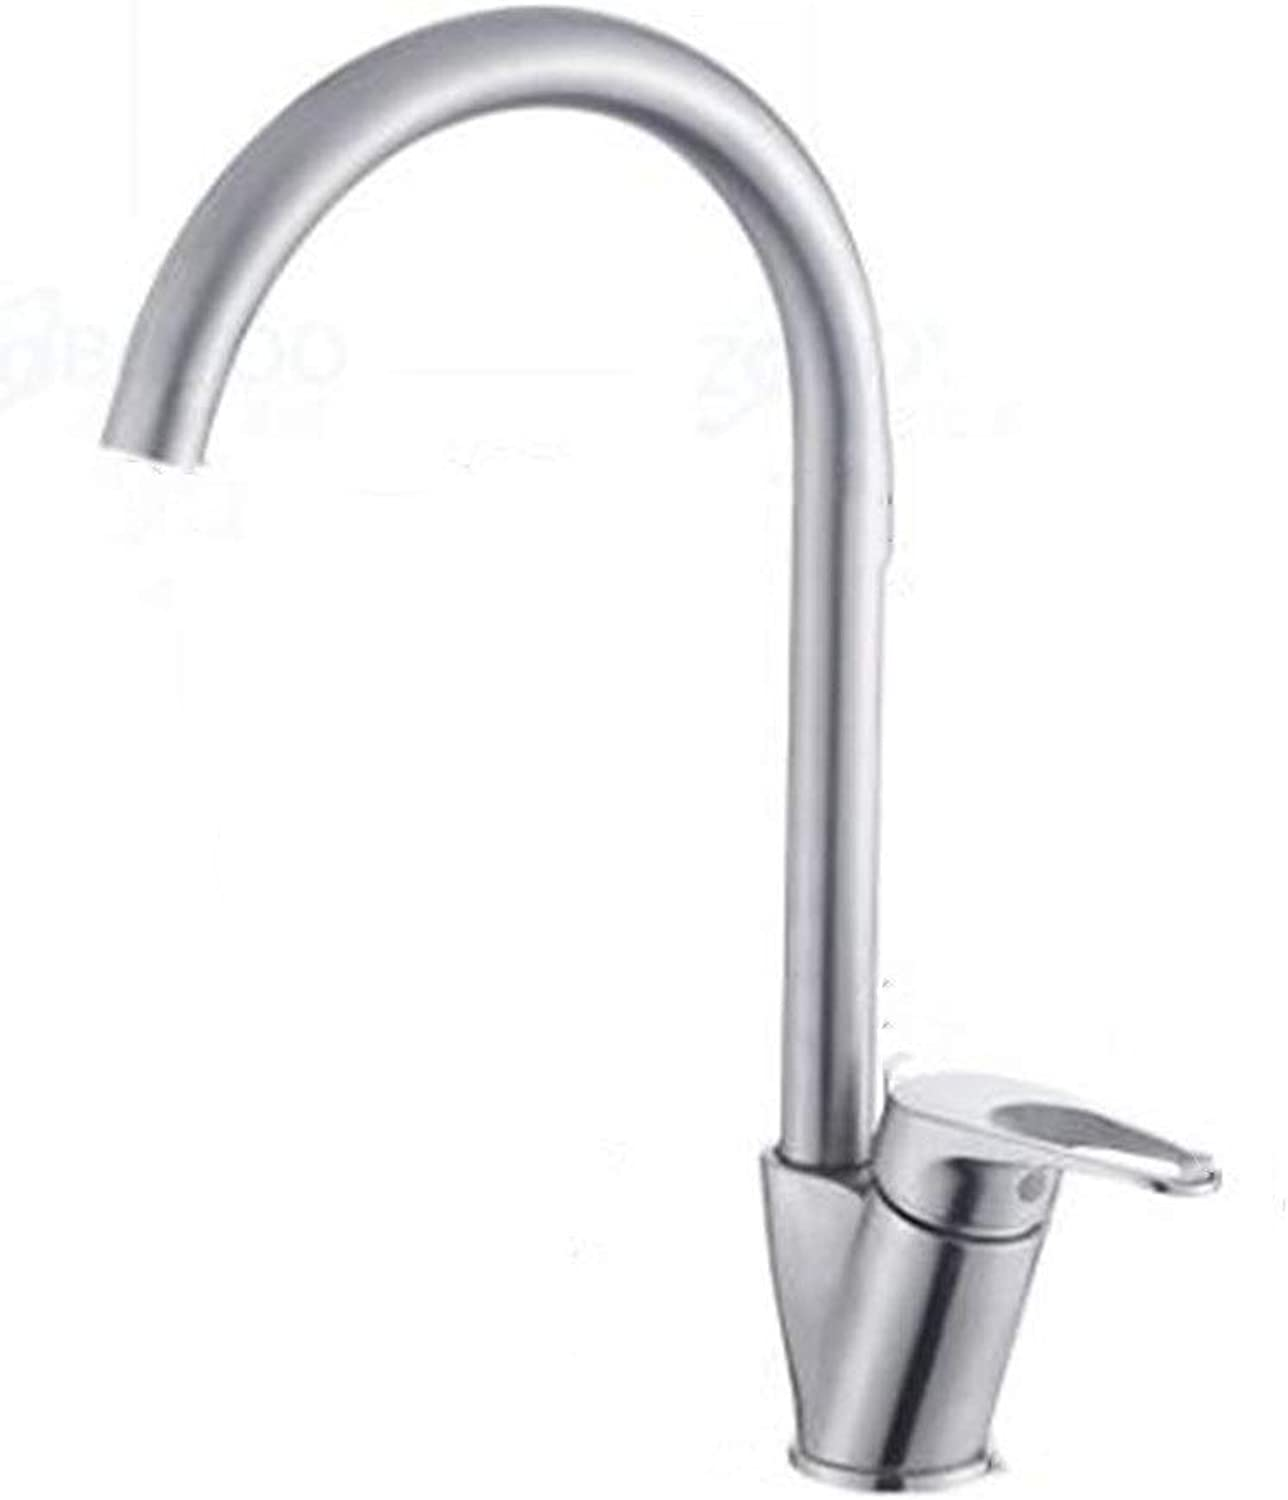 Stainless steel kitchen faucet bathroom sink sink hot and cold stainless steel faucet